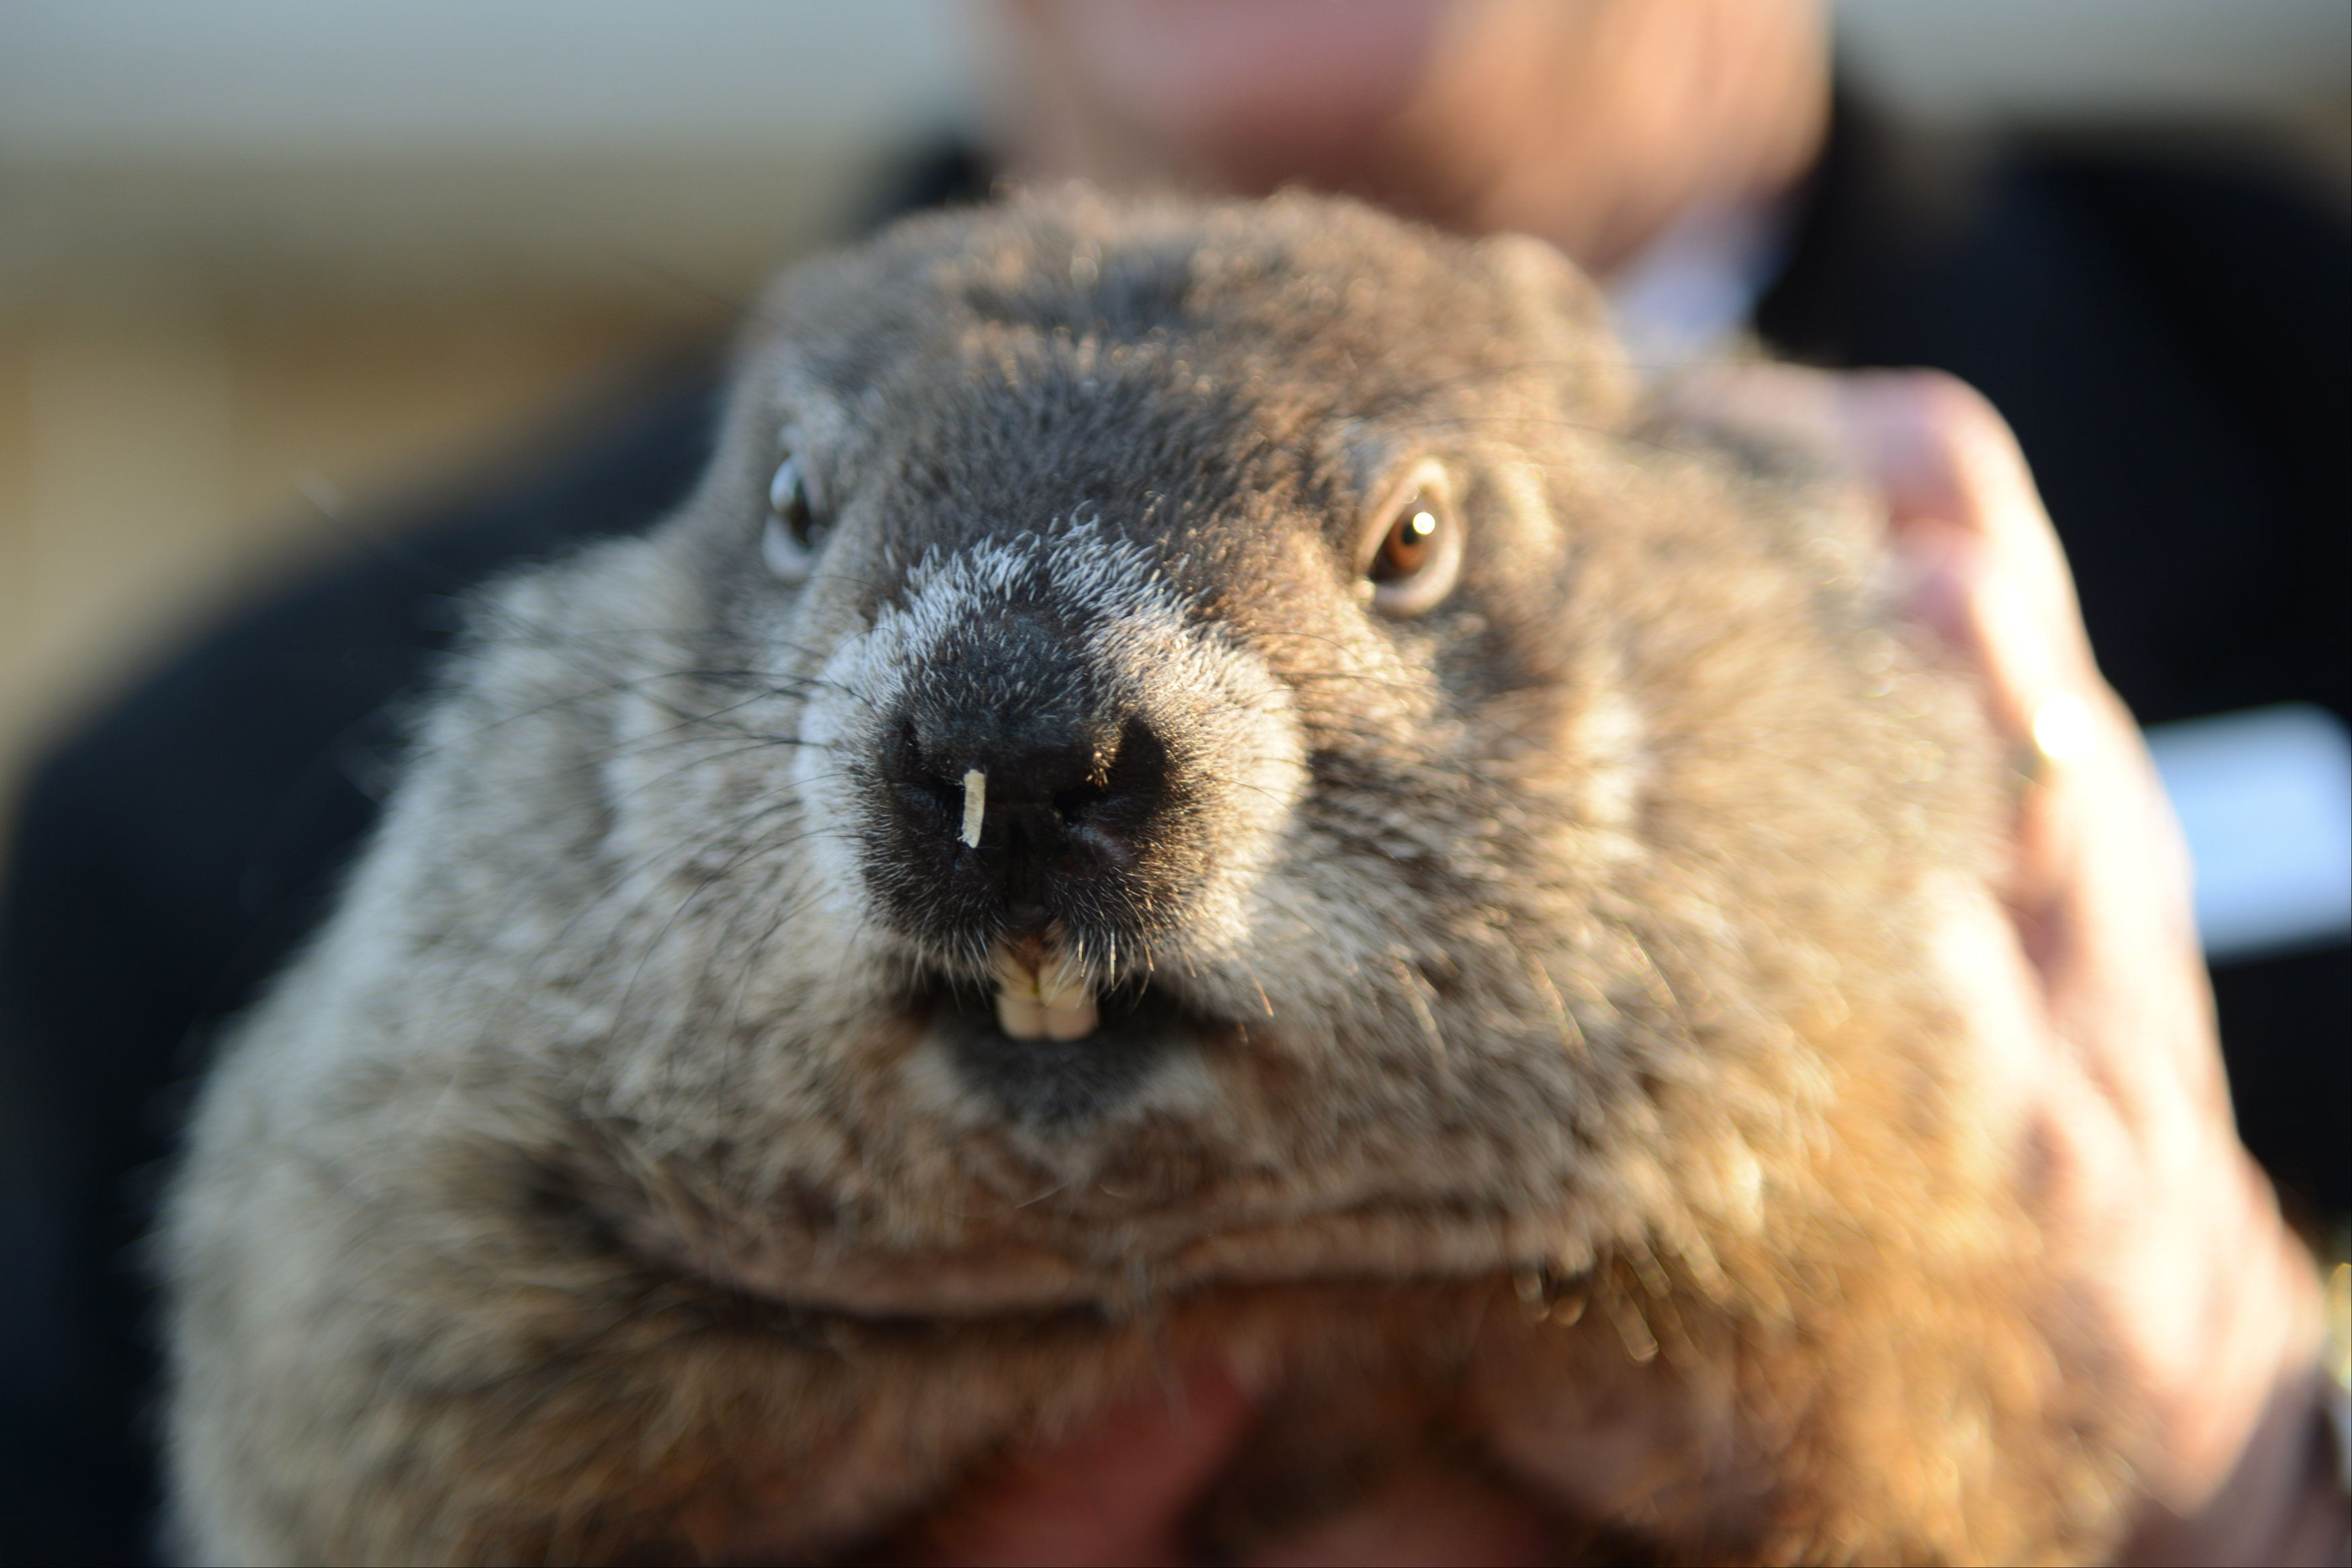 Groundhog co-handler Ron Ploucha holds up groundhog Punxsutawney Phil after Phil's annual weather prediction on Gobbler's Knob on the 130th Groundhog Day in Punxsutawney, Pennsylvania February 2, 2016. Punxsutawney Phil, a famed U.S. groundhog with an even more famous shadow, emerged from his burrow on Tuesday and predicted an early spring. REUTERS/Alan Freed